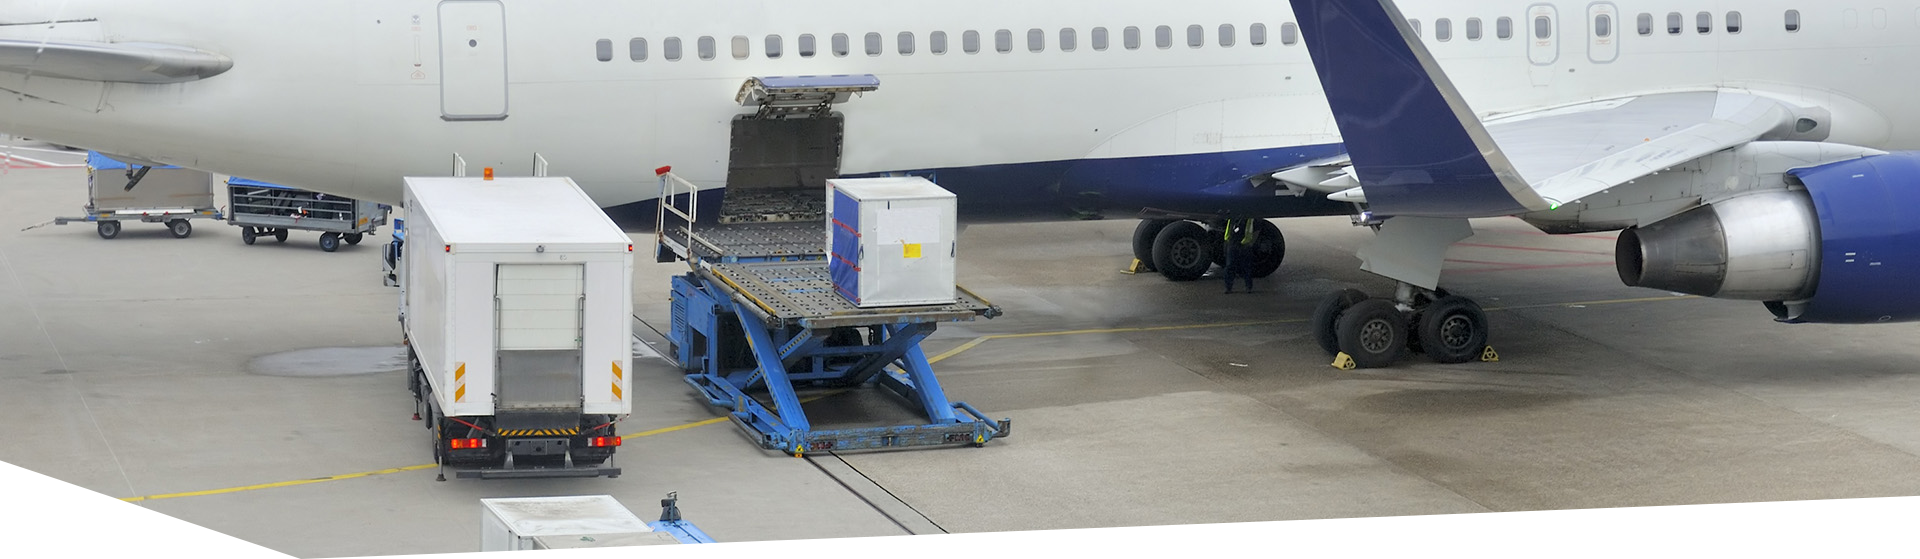 Driving Reliability with Effective Cargo Management Technology for Airports and Cargo Terminals